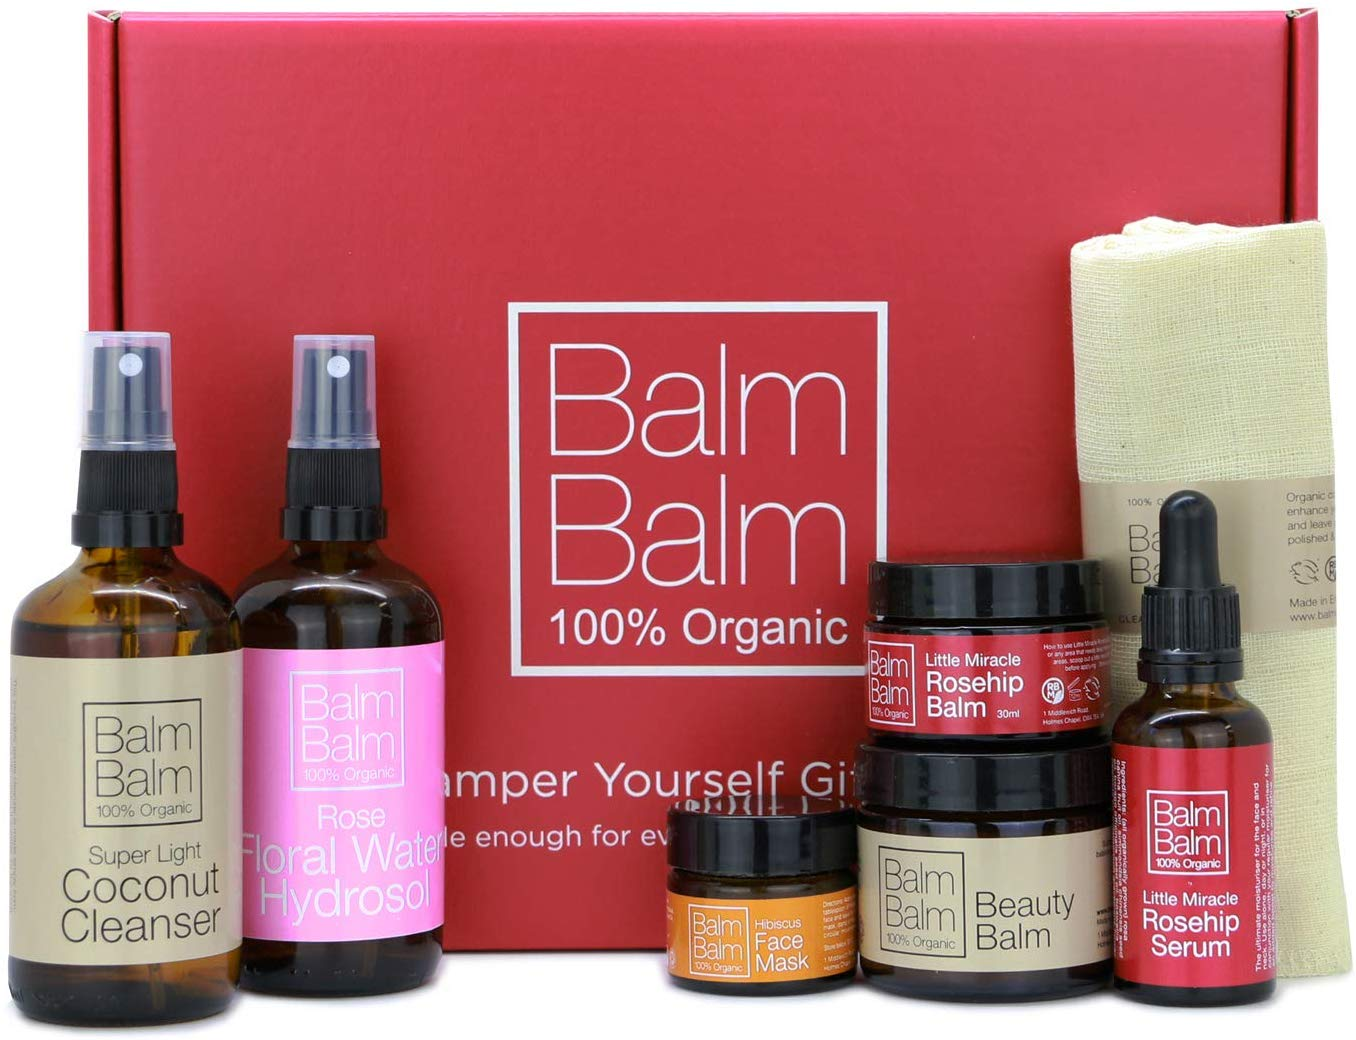 balm balm hk products photo